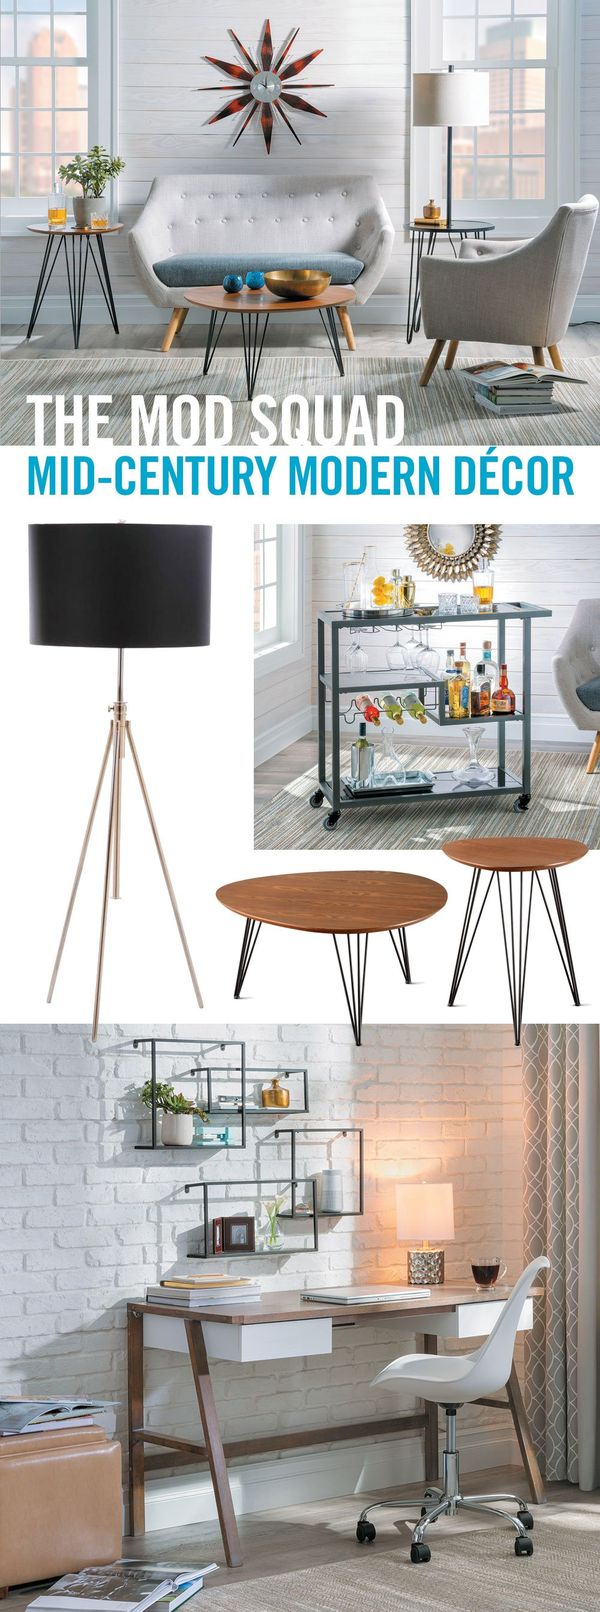 If youre looking for furniture for small spaces, youll love the mid-century bench and arm chair. Create an entire look with a wall clock, wall shelves, table set, bar cart, floor lamp, and mid-century desk with chair. Family and friends who visit your home will be impressed with your sense of style and may even ask you for design tips.